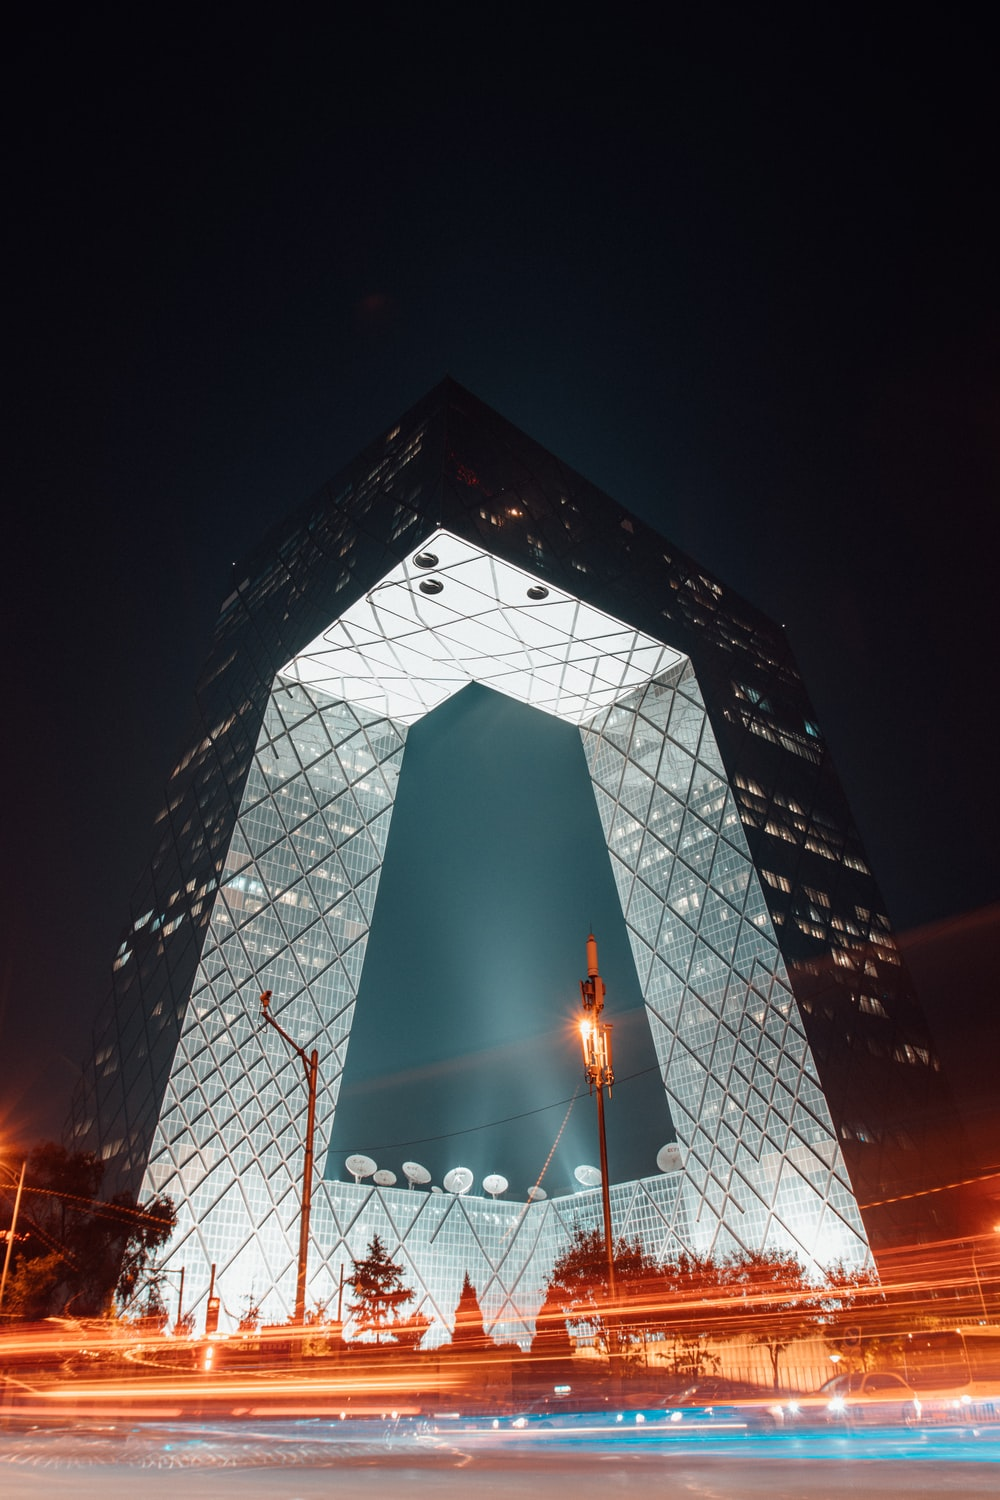 curtain wall building on time lapse photography